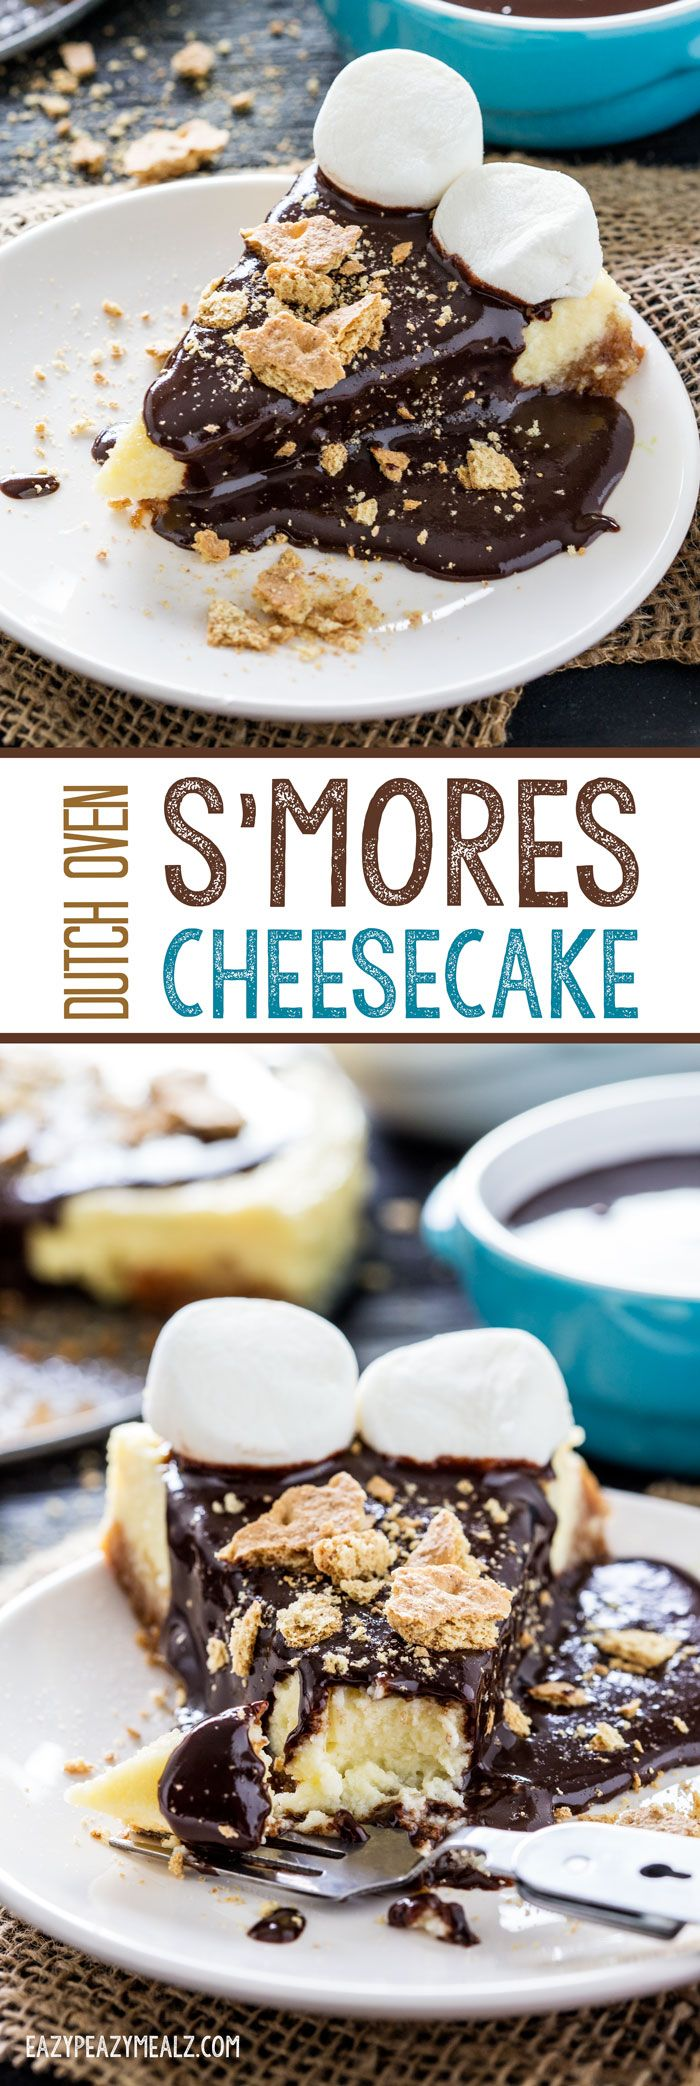 "Dutch Oven S'mores Cheesecake: this cheesecake can be made while camping using a dutch oven, springform pan, and charcoal. It is so flavorful, fluffy, and yummy, and fun for ""glamping"" #ad #Glamping #FallGlamping - Eazy Peazy Mealz"